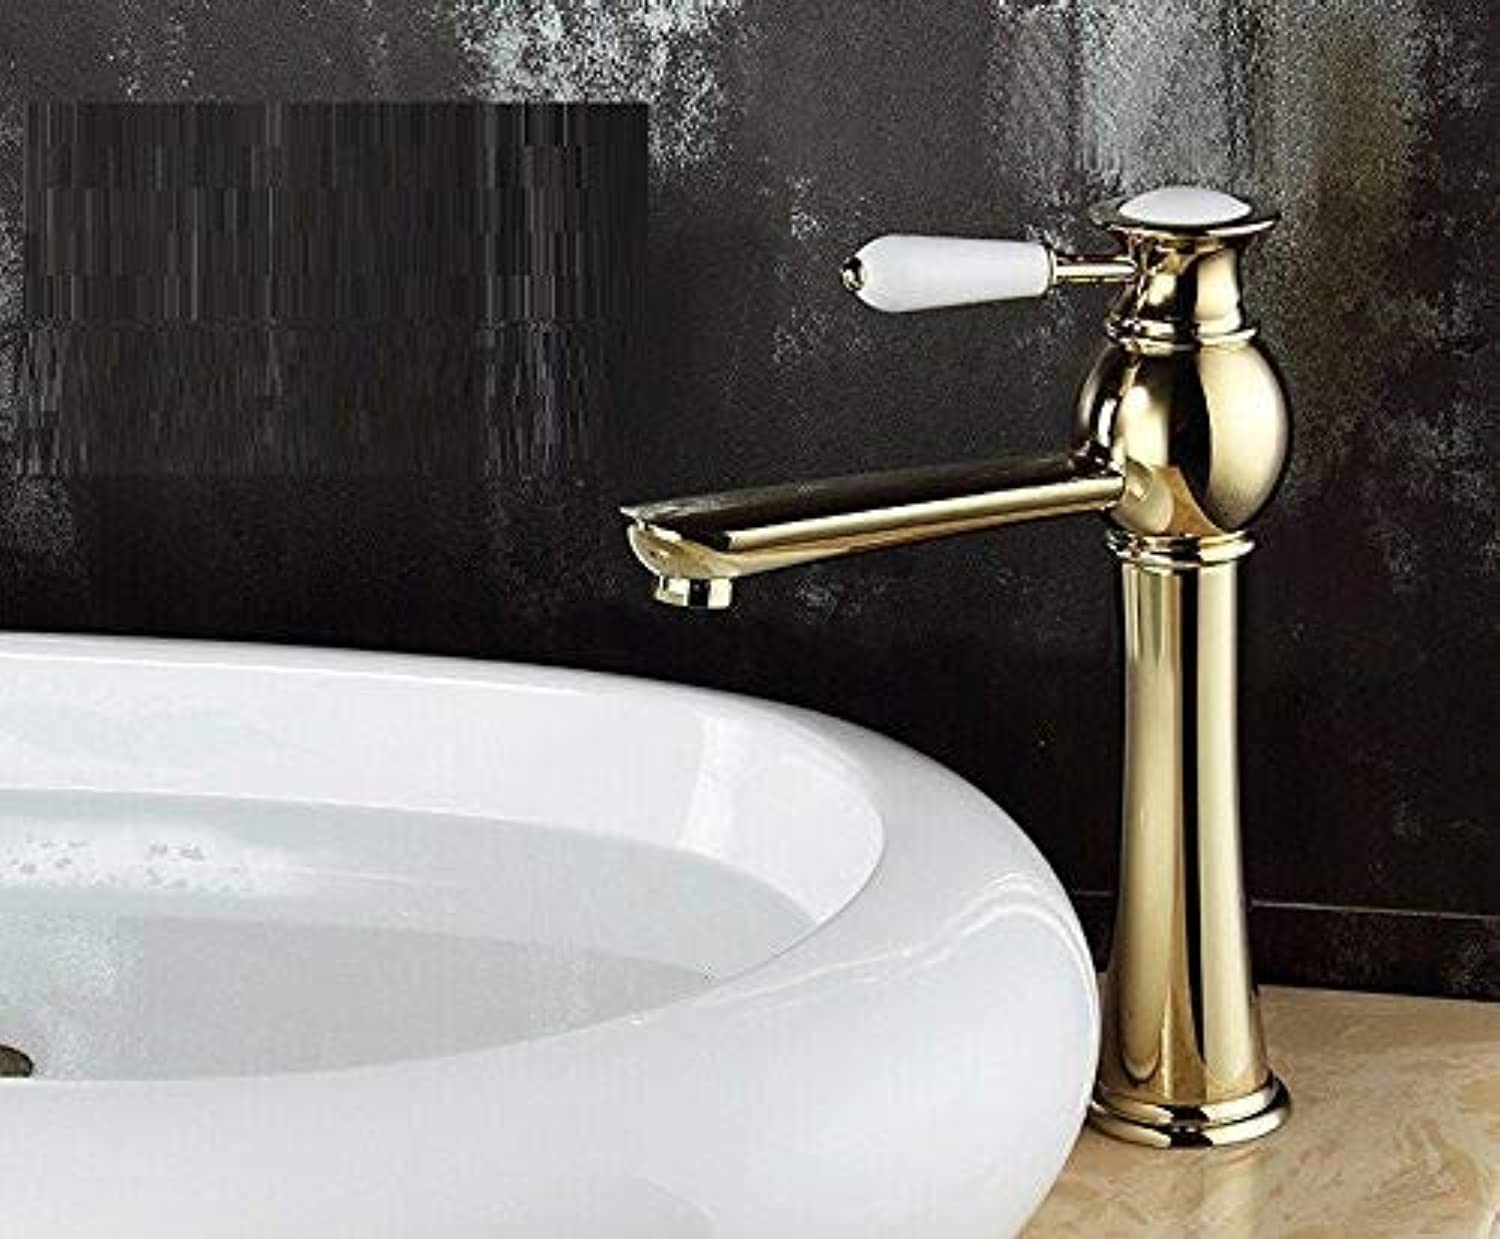 CFHJN HOME Taps Brass And With Ceramic Single Handle Basin Faucet Hot And Cold Tall High gold Bathroom Sink Mixer Tap Taps